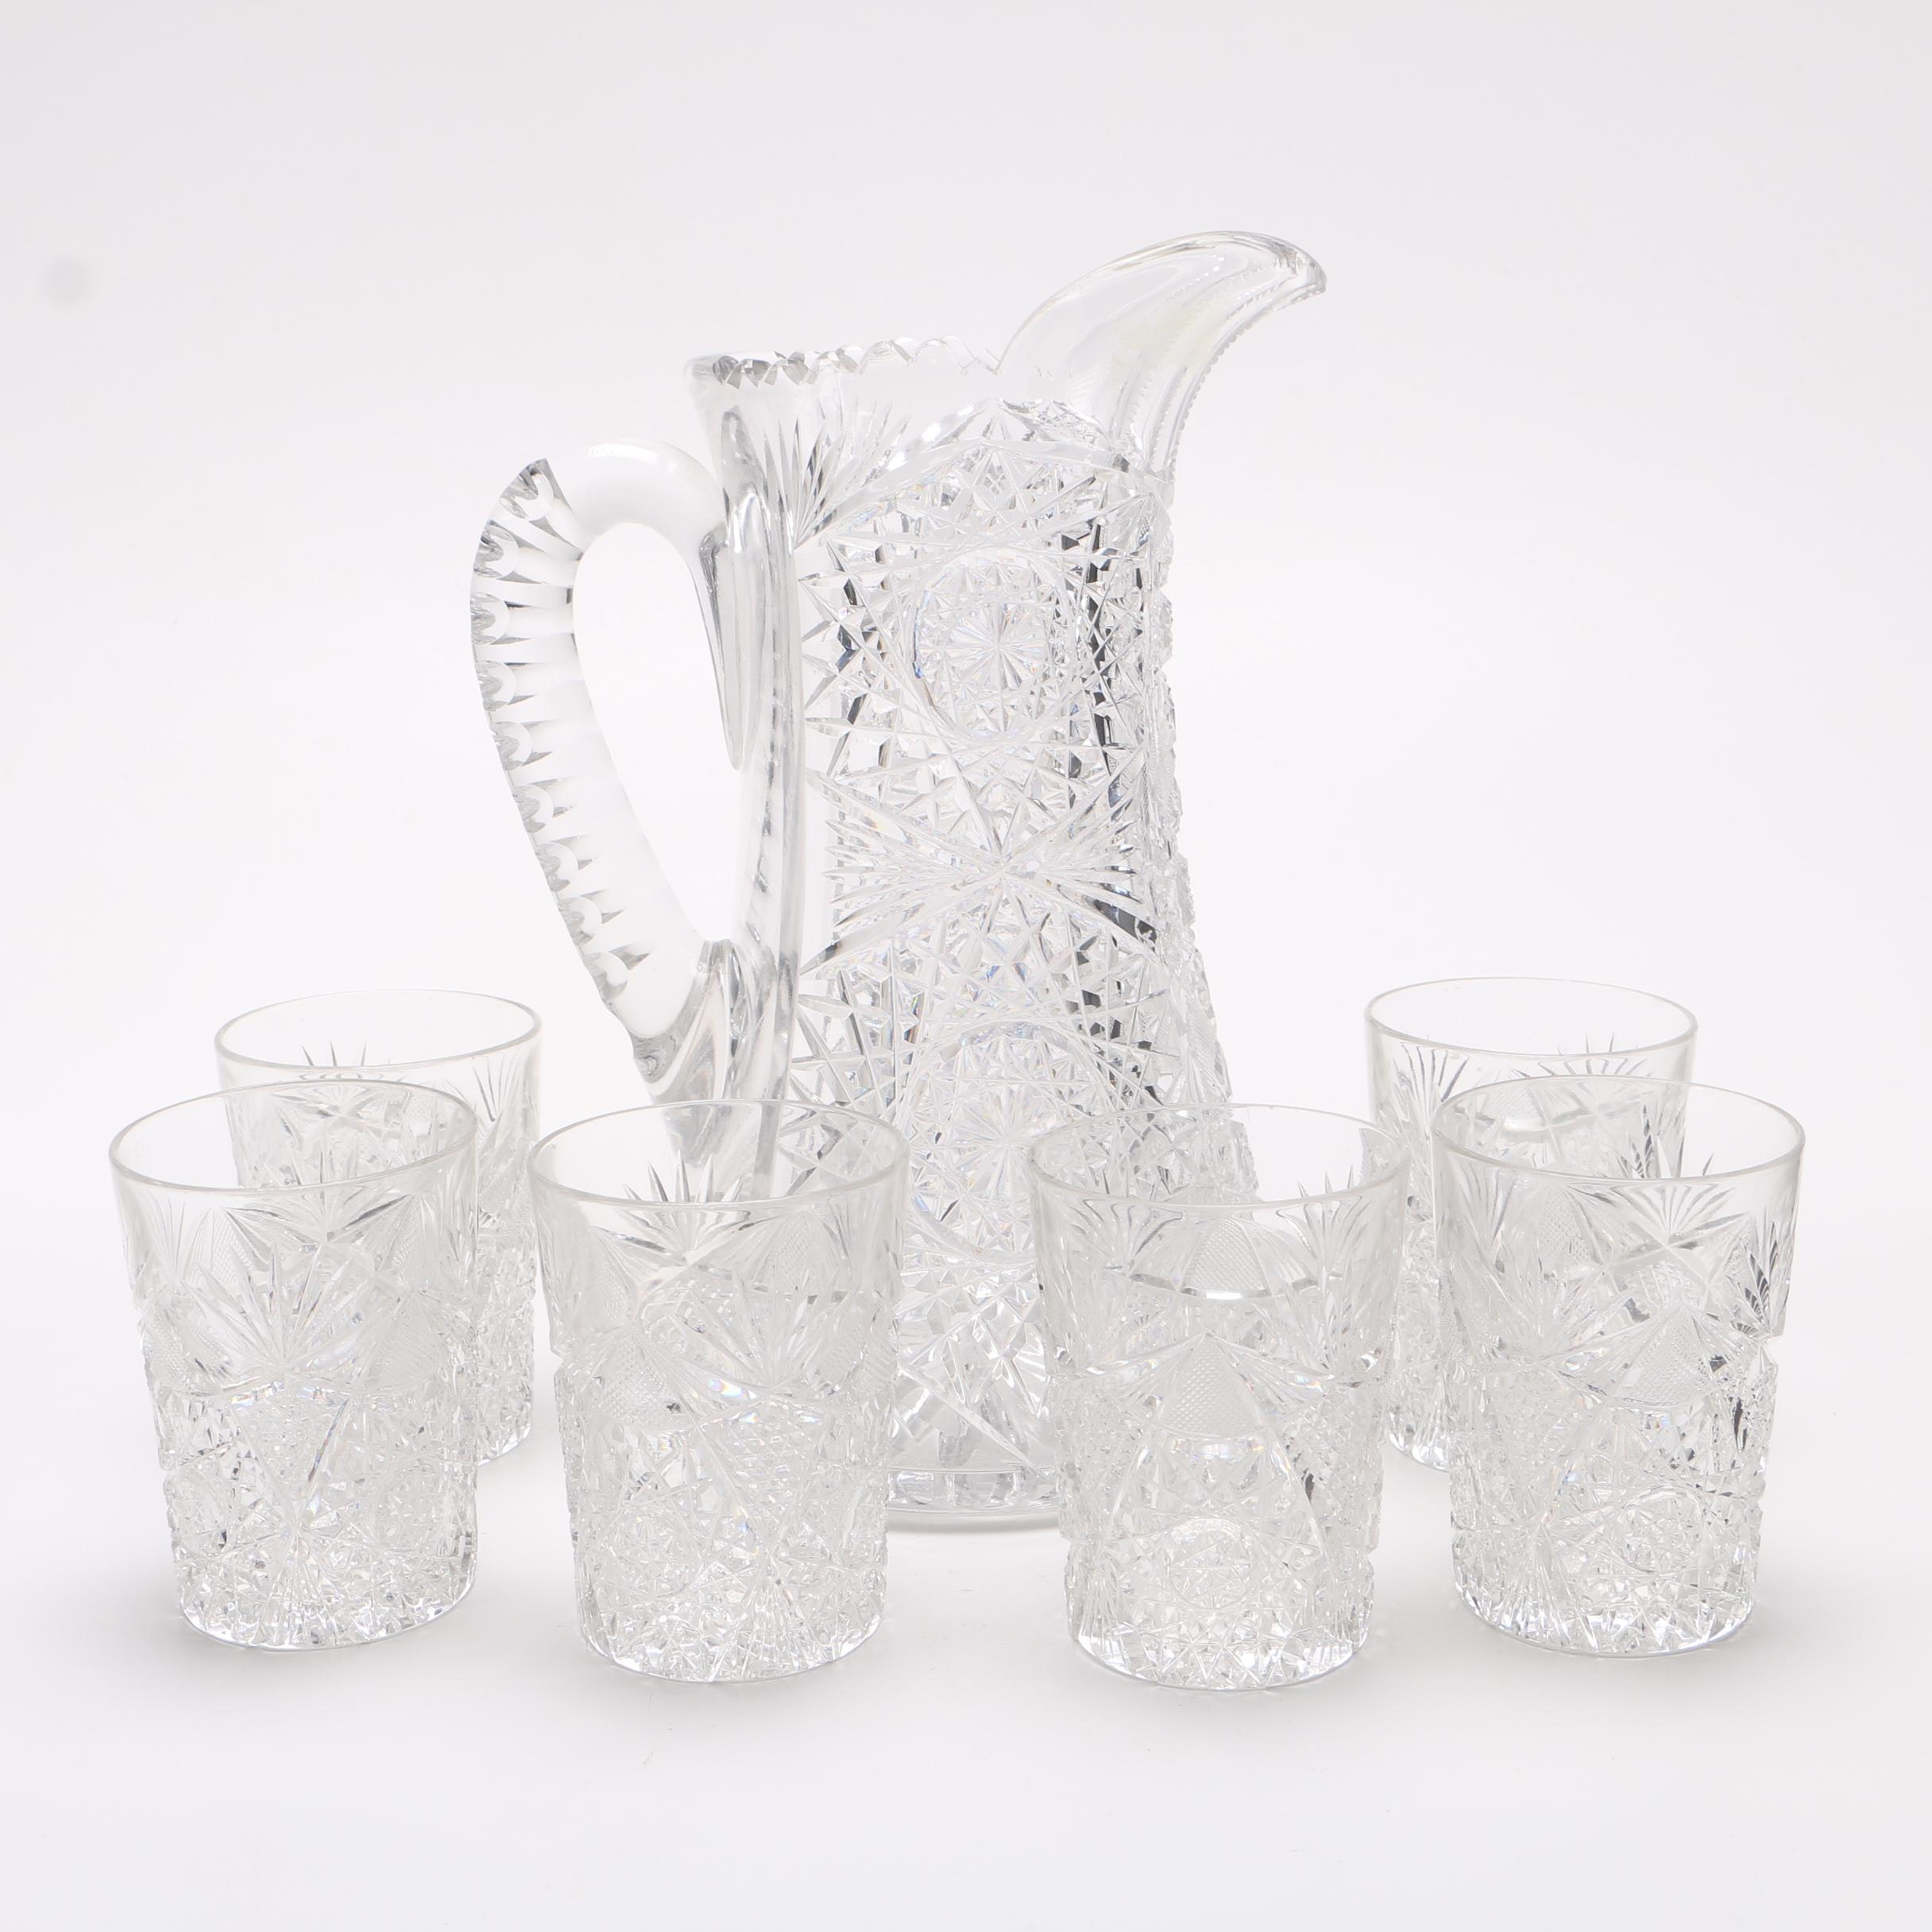 Crystal Pitcher and Tumbler Set